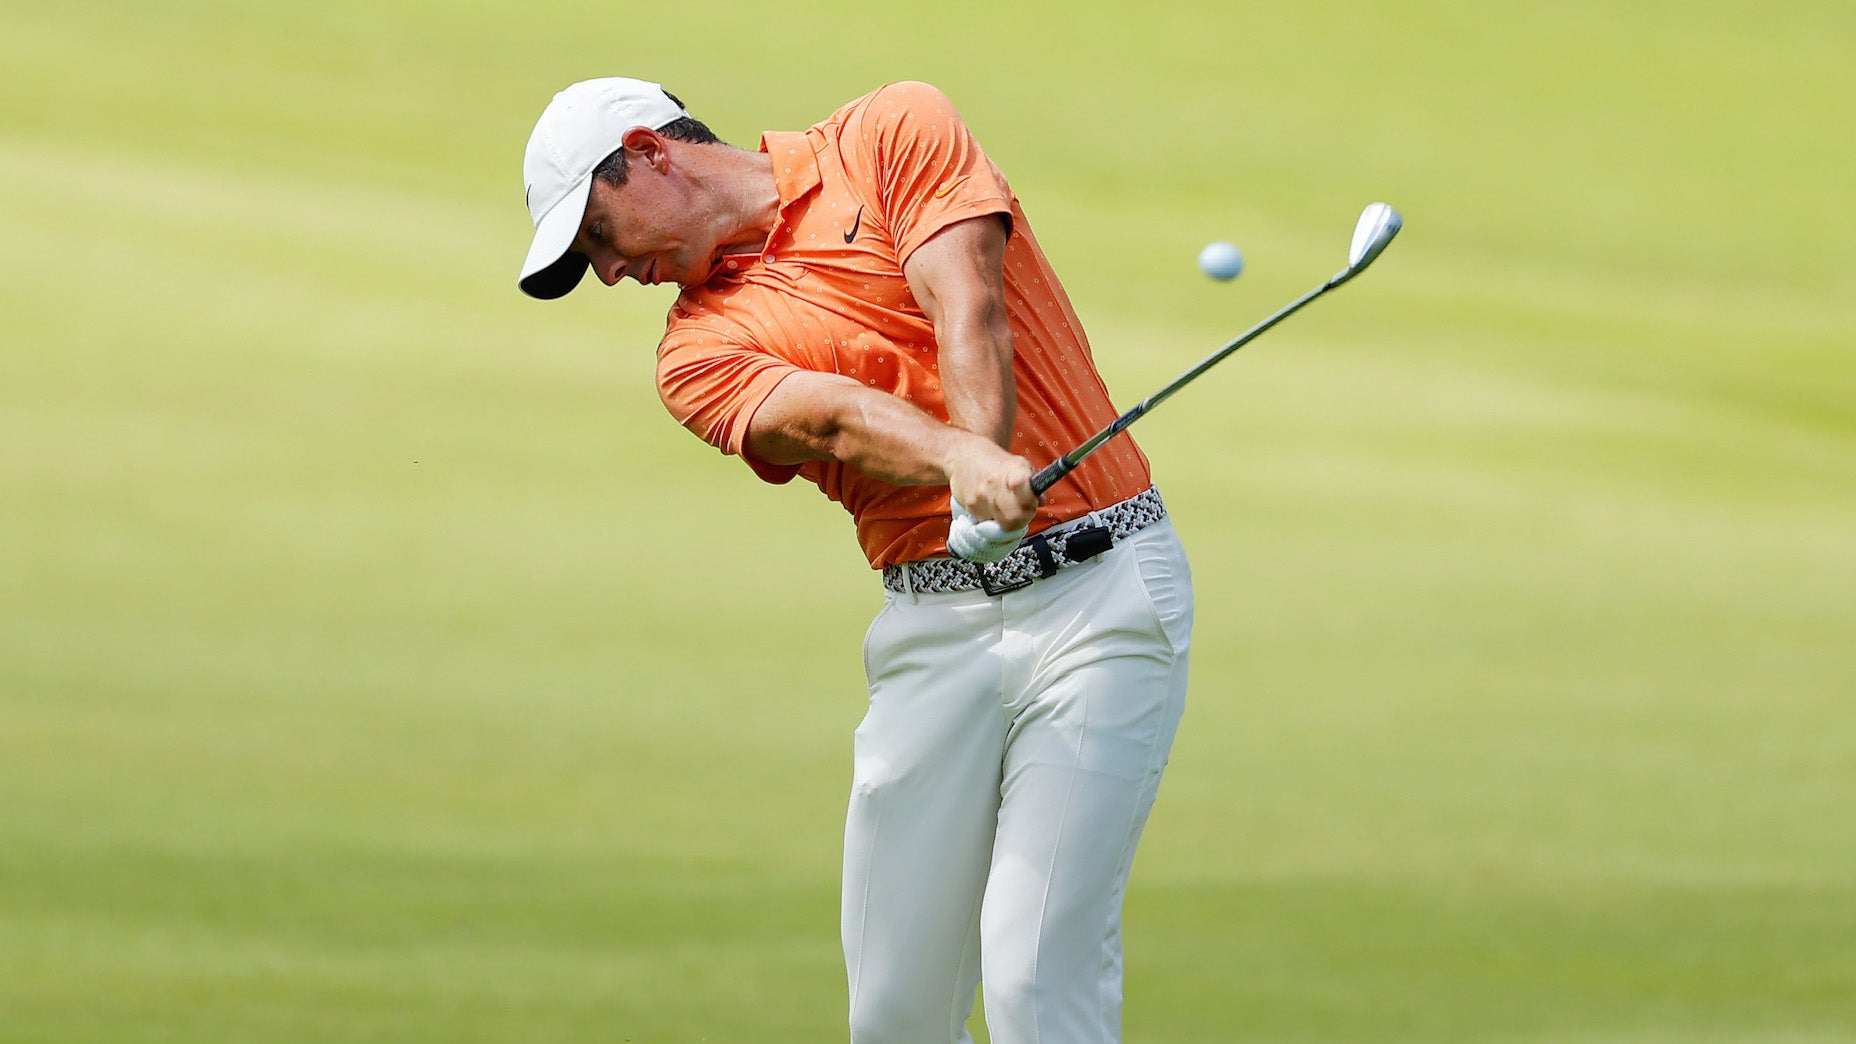 Here's why Rory McIlroy uses the TaylorMade TP5 golf ball